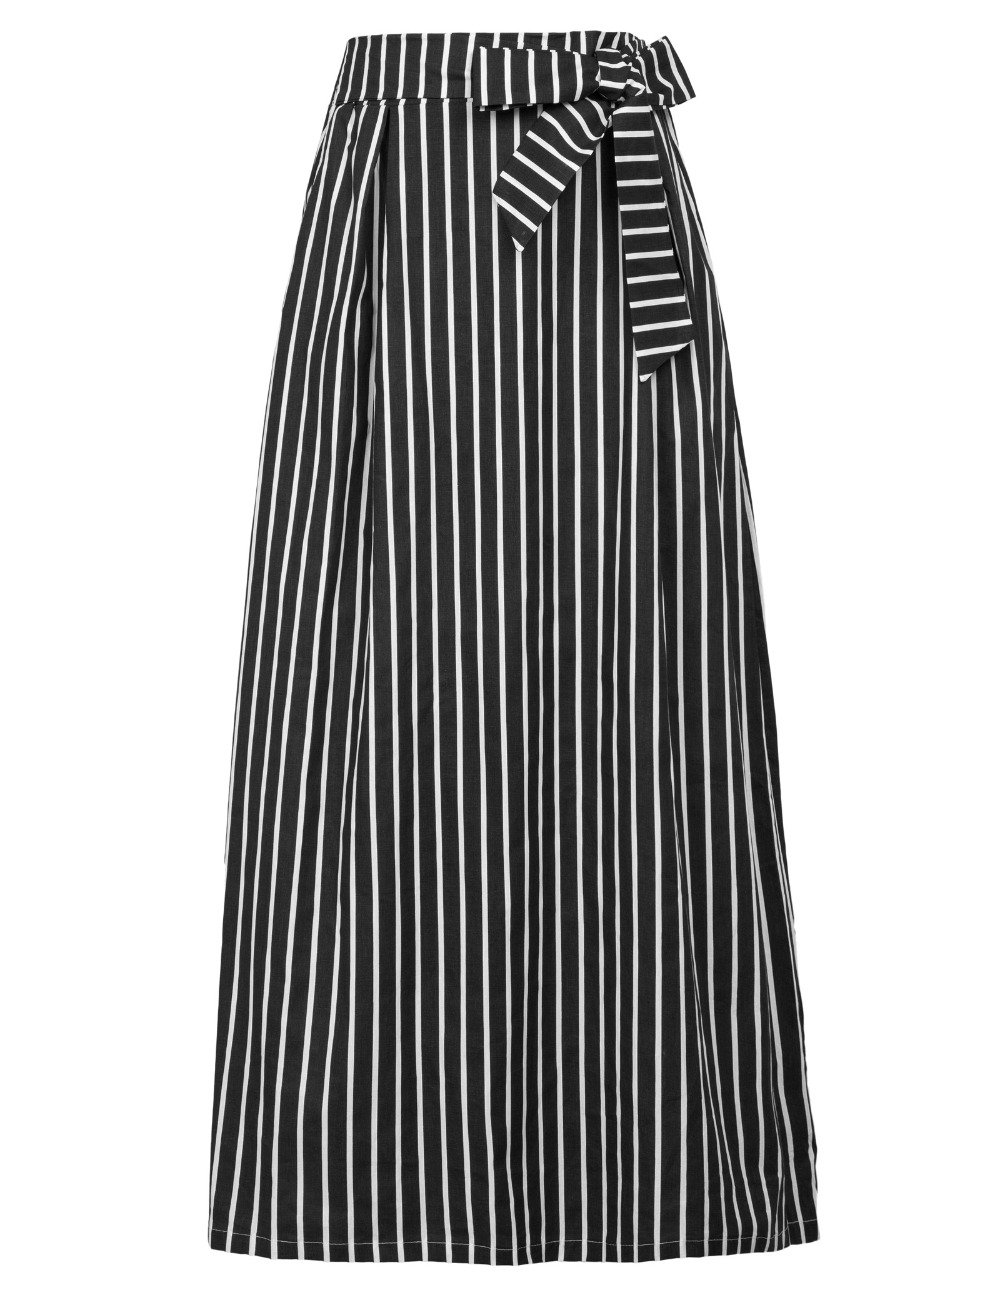 New Long Women striped skirt elegant 50s retro High Waist Print Maxi skirt Stretchy office work party Skirts Plus Size S-2xl